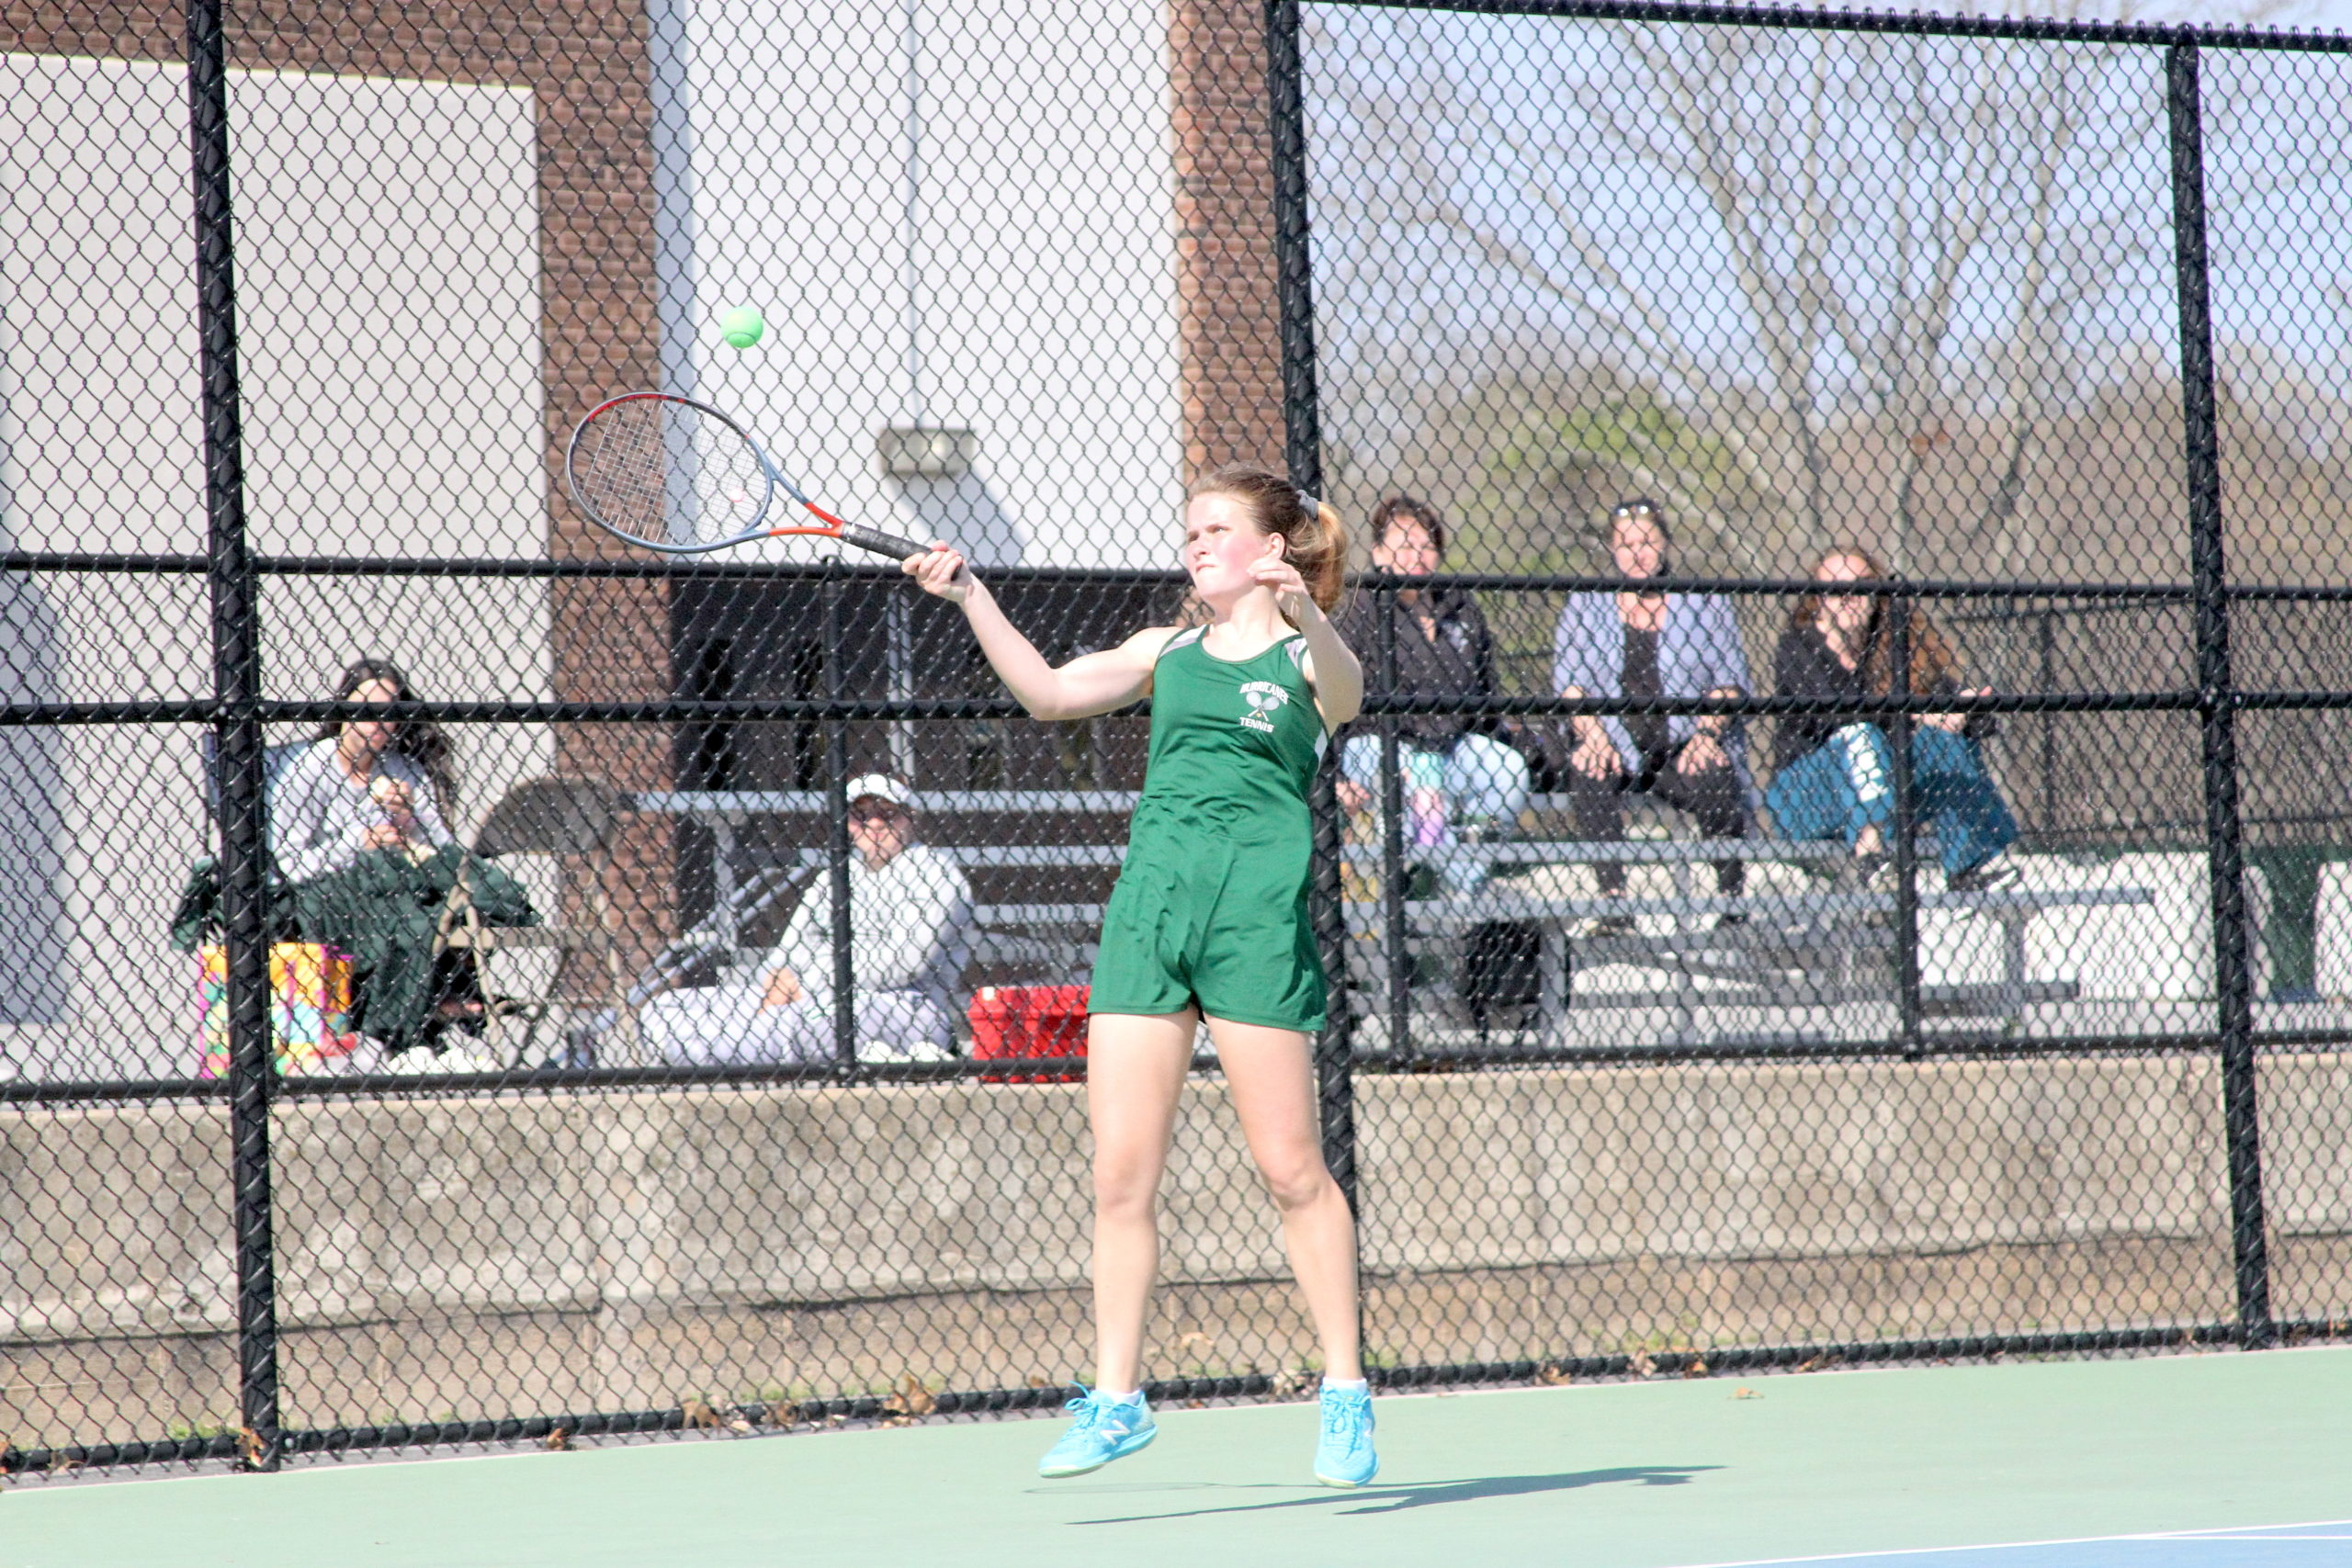 Westhampton Beach junior Katelyn Stabile keeps the volley going against East Hampton in the Division IV doubles finals on Tuesday.